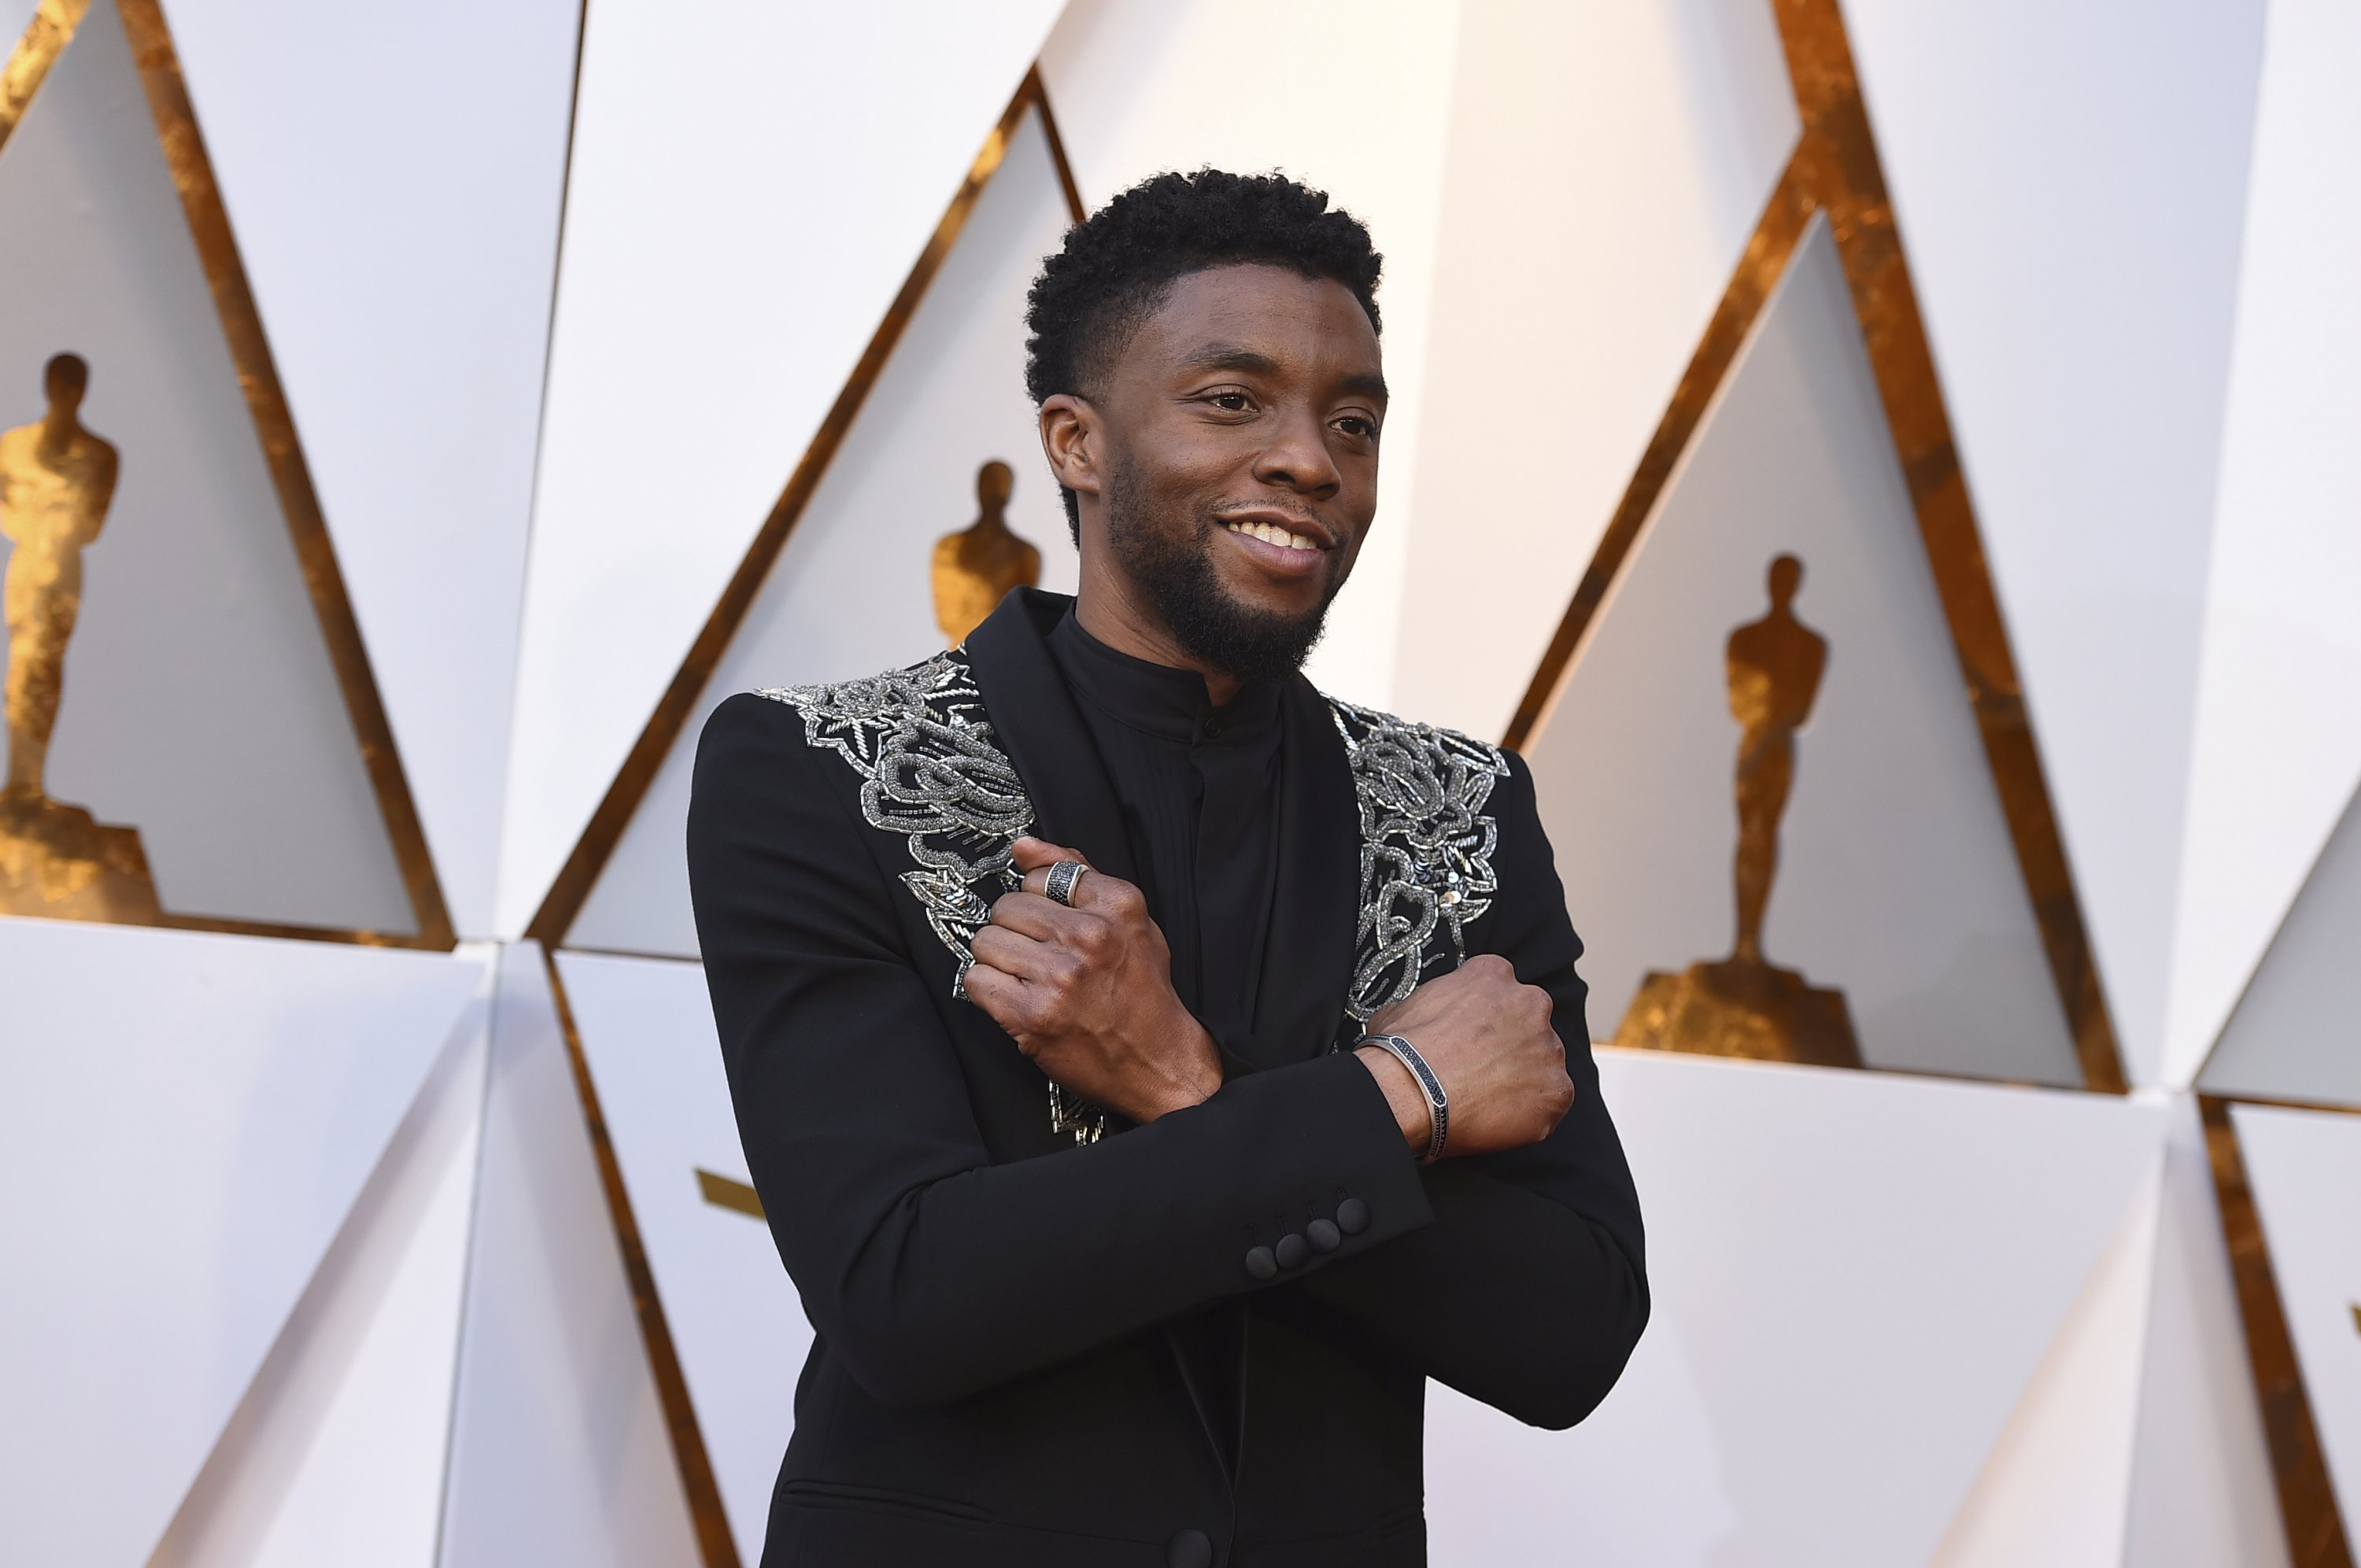 Chadwick Boseman arrives at the Oscars at the Dolby Theater in Los Angeles, U.S., March 4, 2018. (AP Photo)